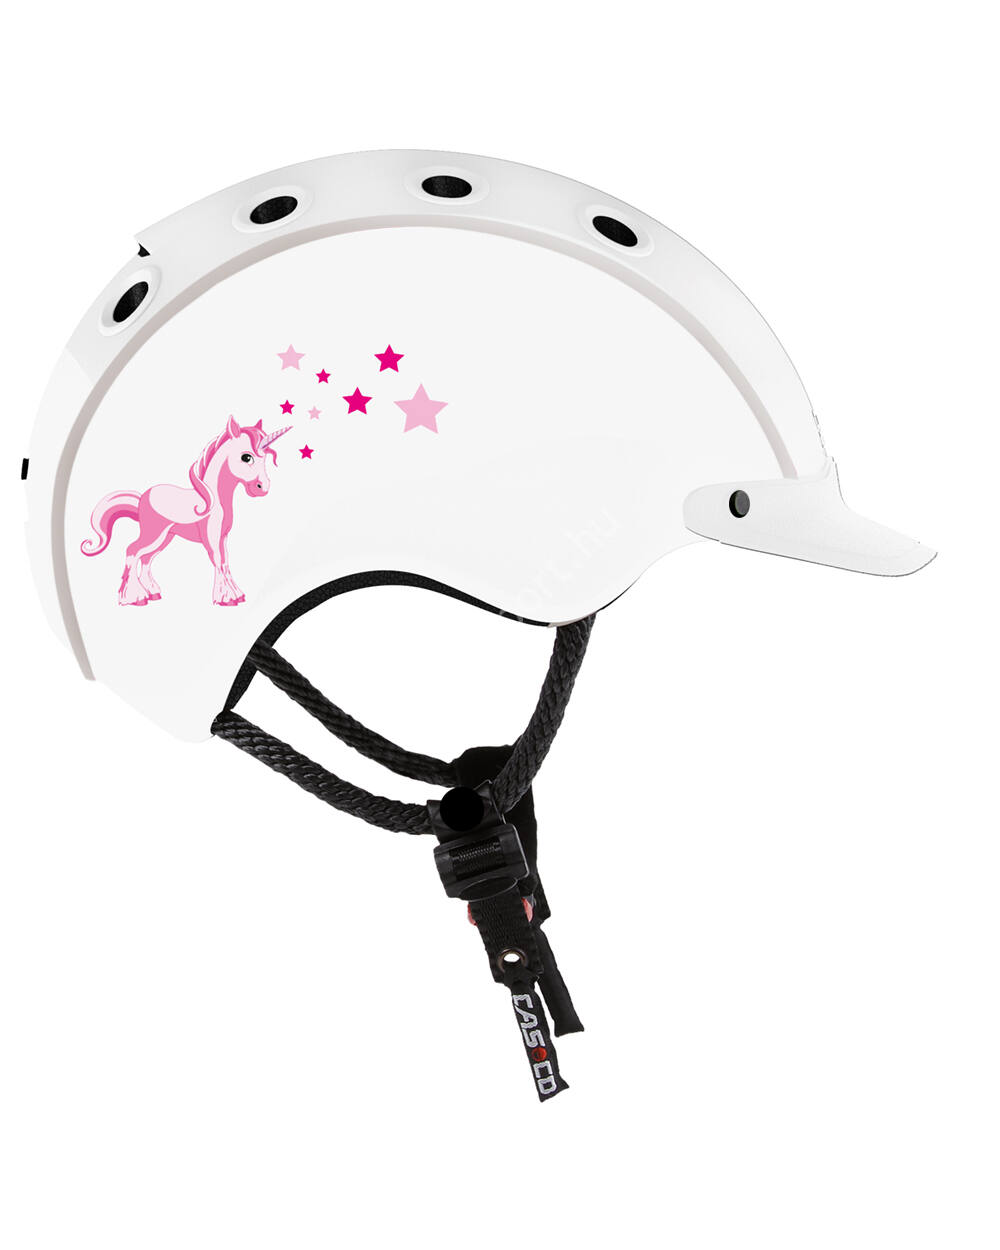 Casco Mini 2 Unicorn bukósisak, 52-56cm